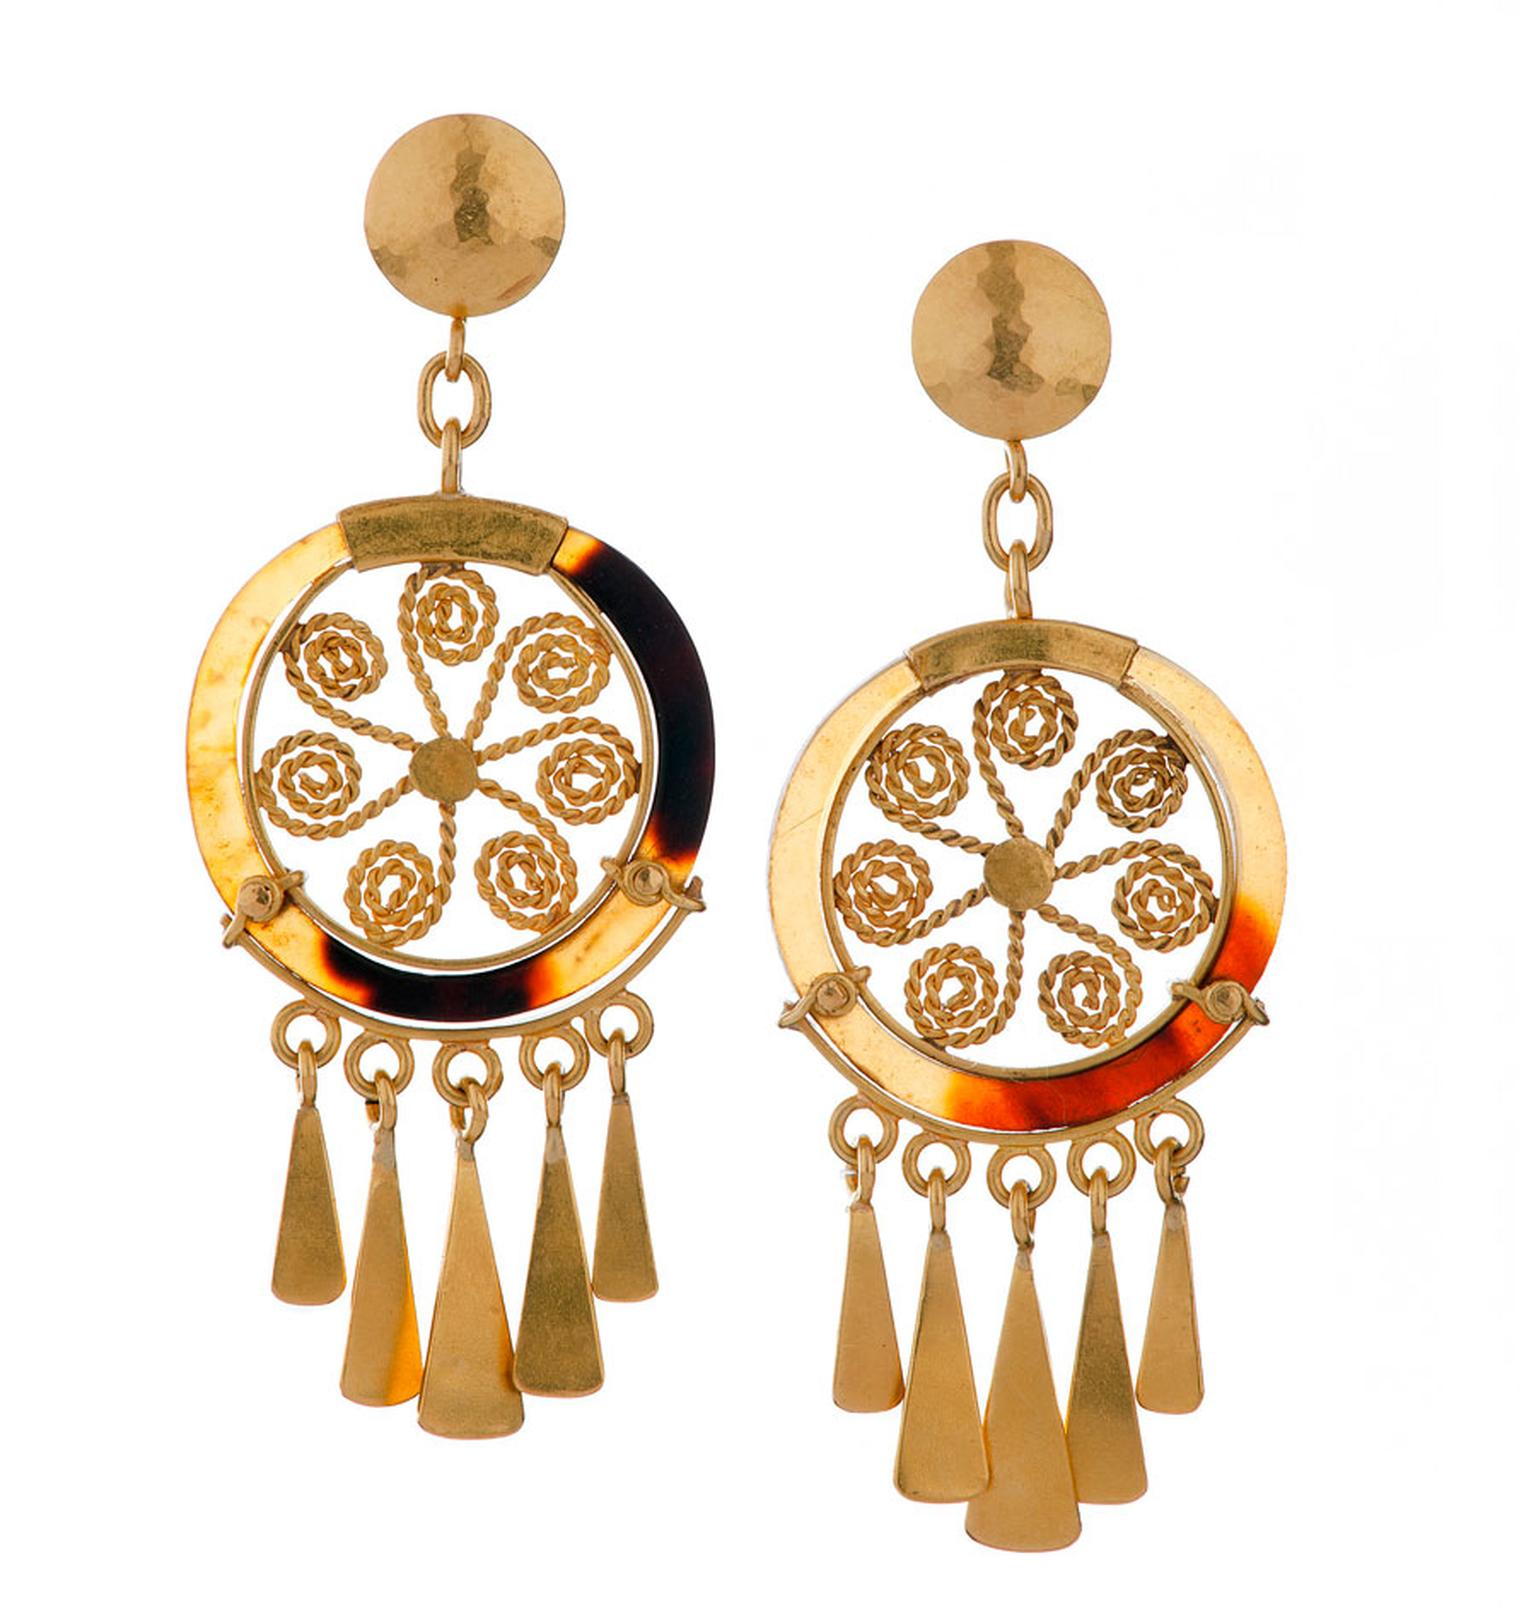 Lisa-Black-Paya-and-Gold-Spiral-Earrings.jpg